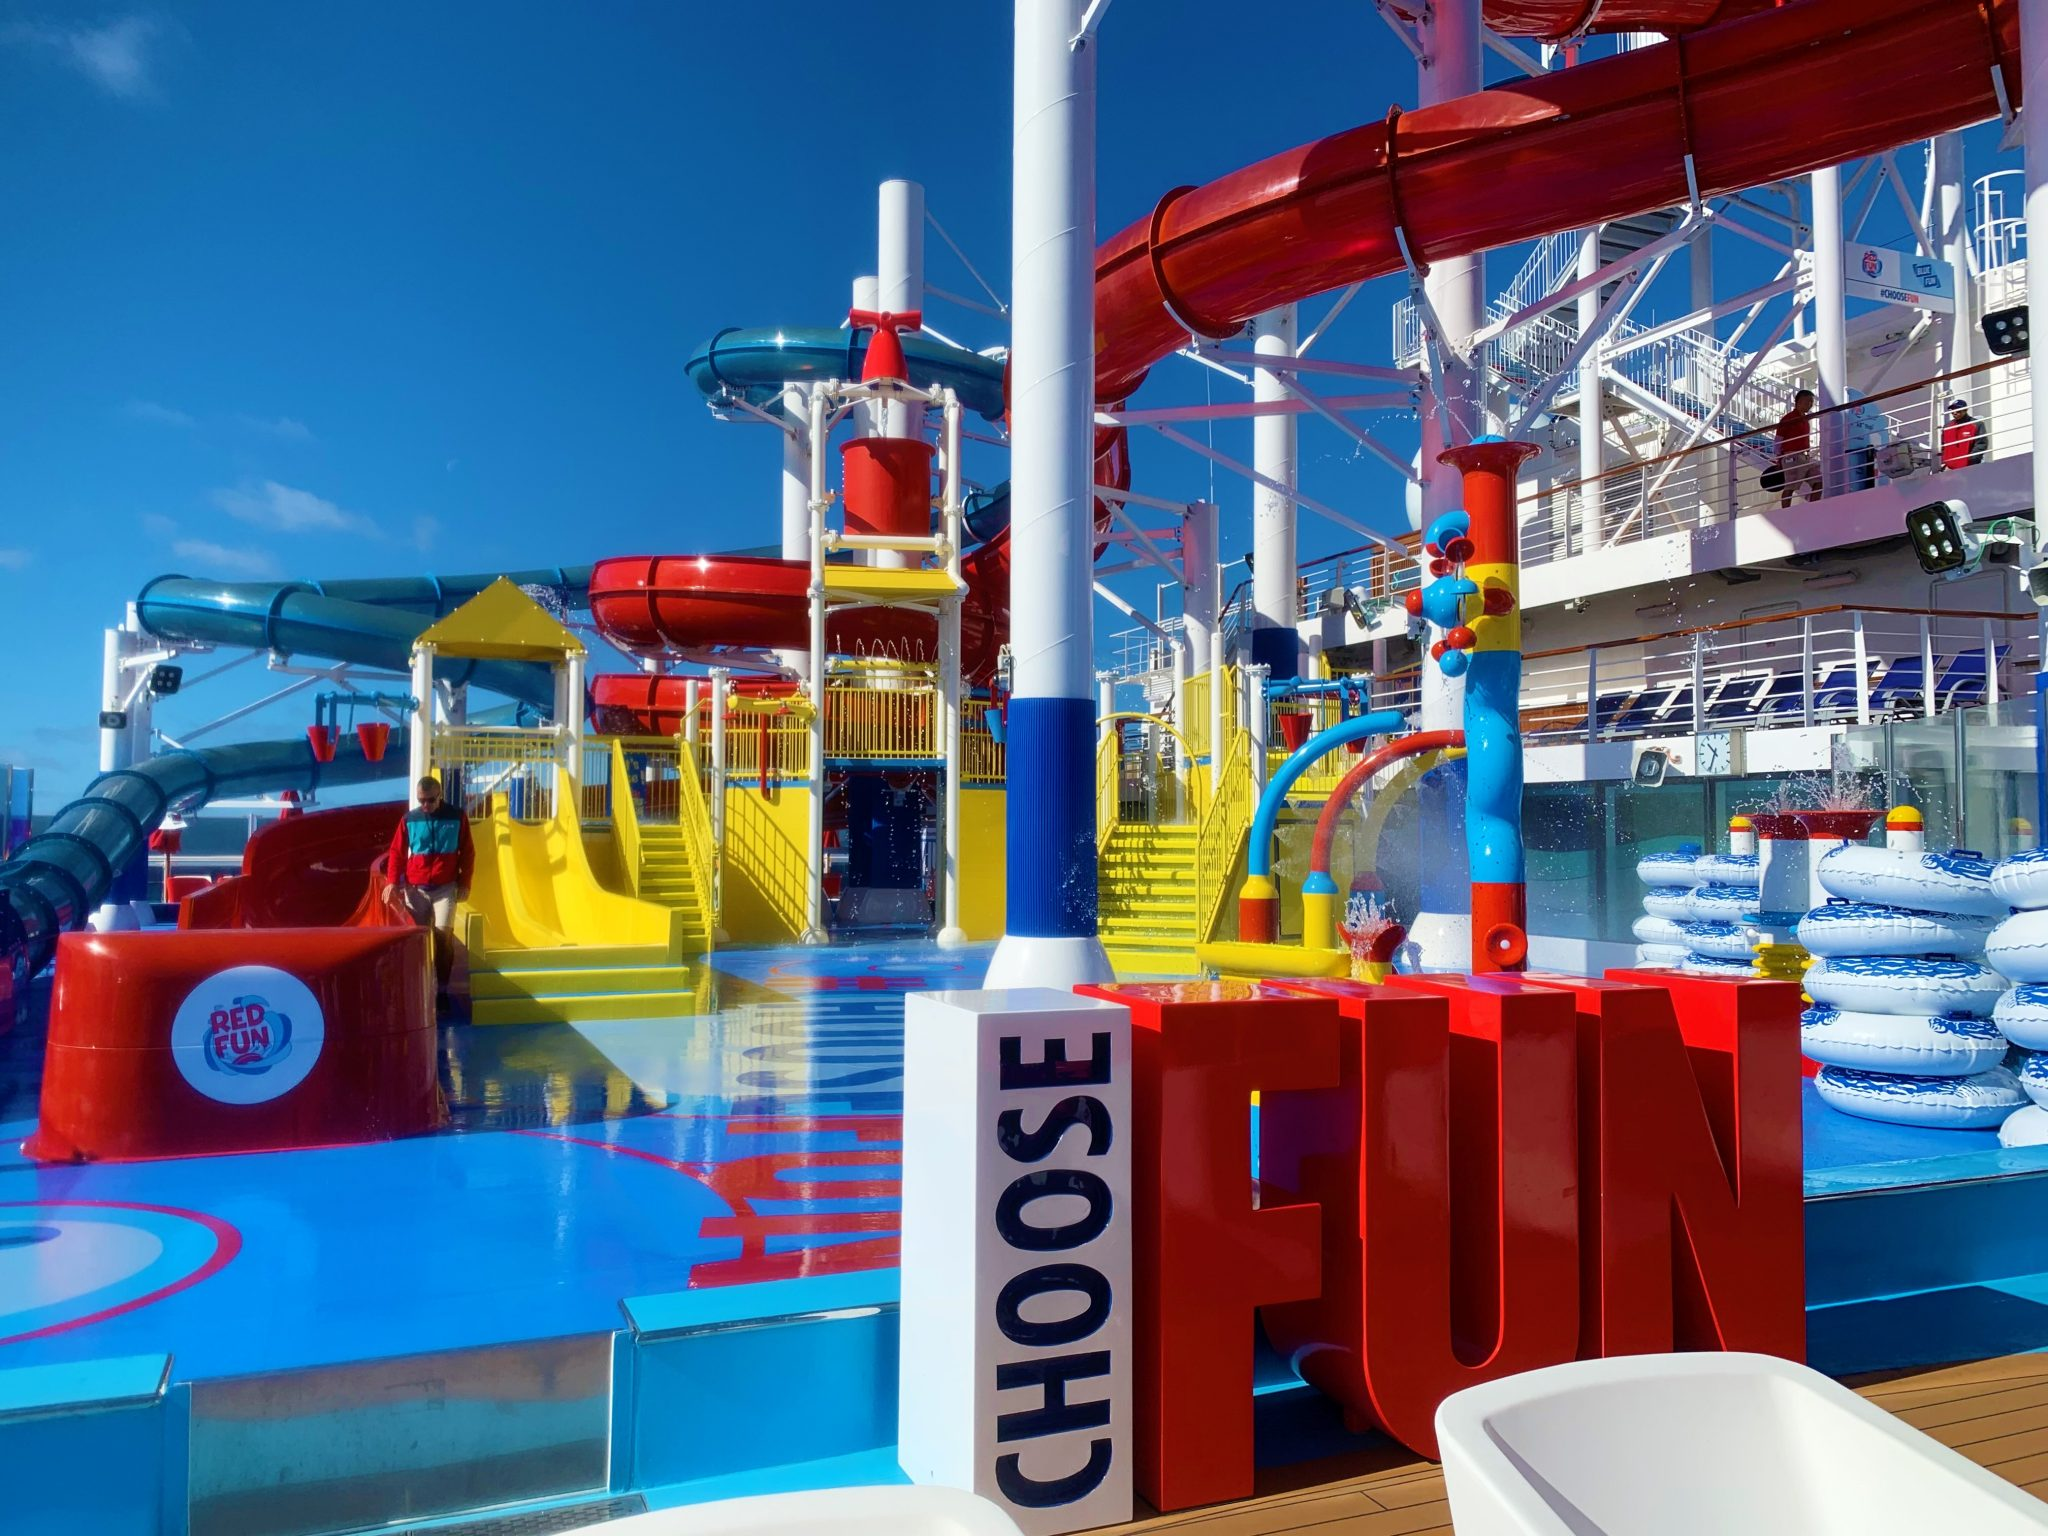 Carnival Panorama Mexican Riviera Cruise Review